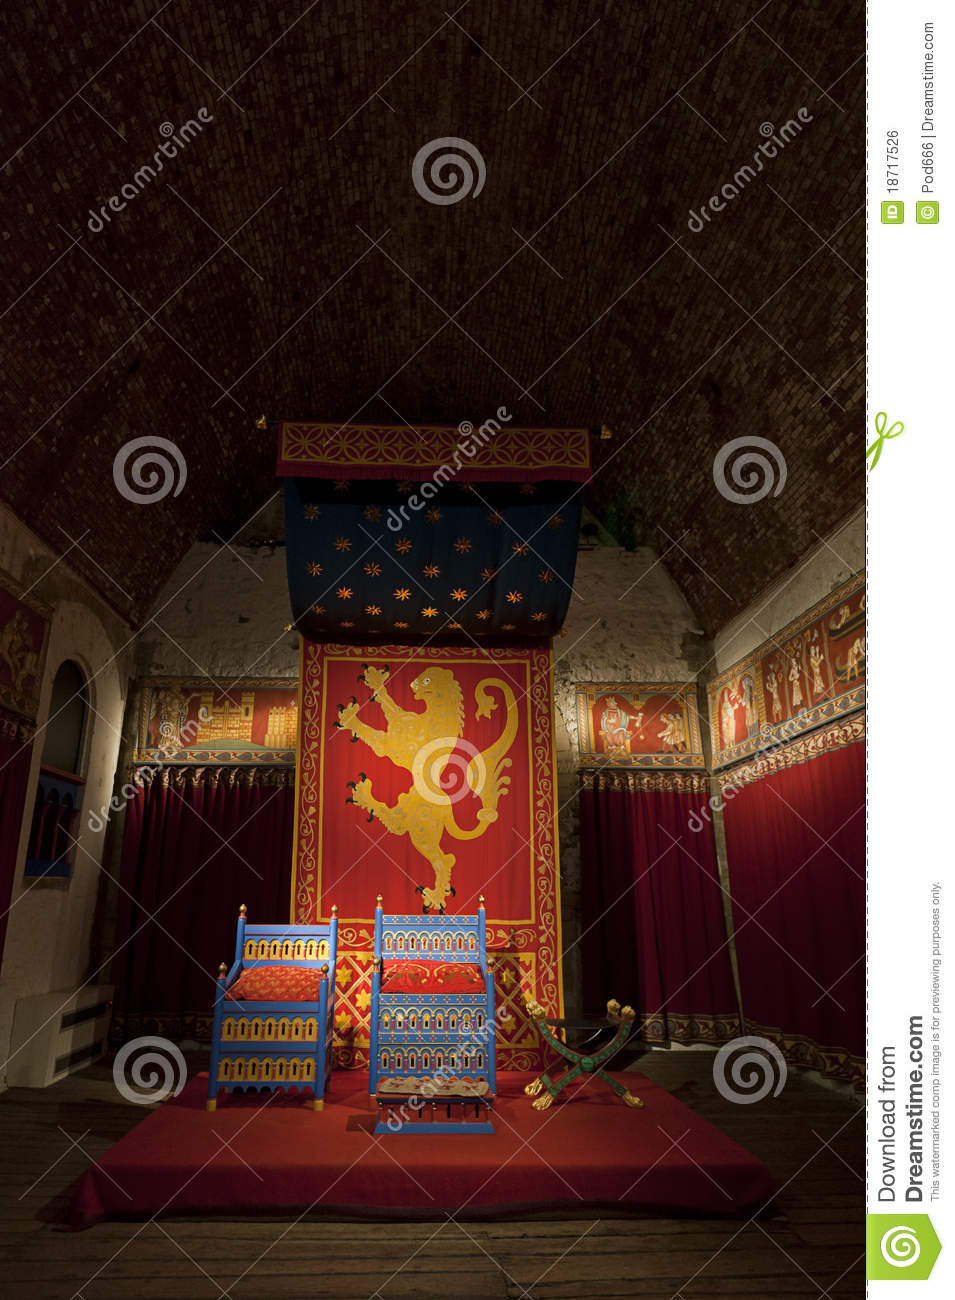 Dover castle kings throne room